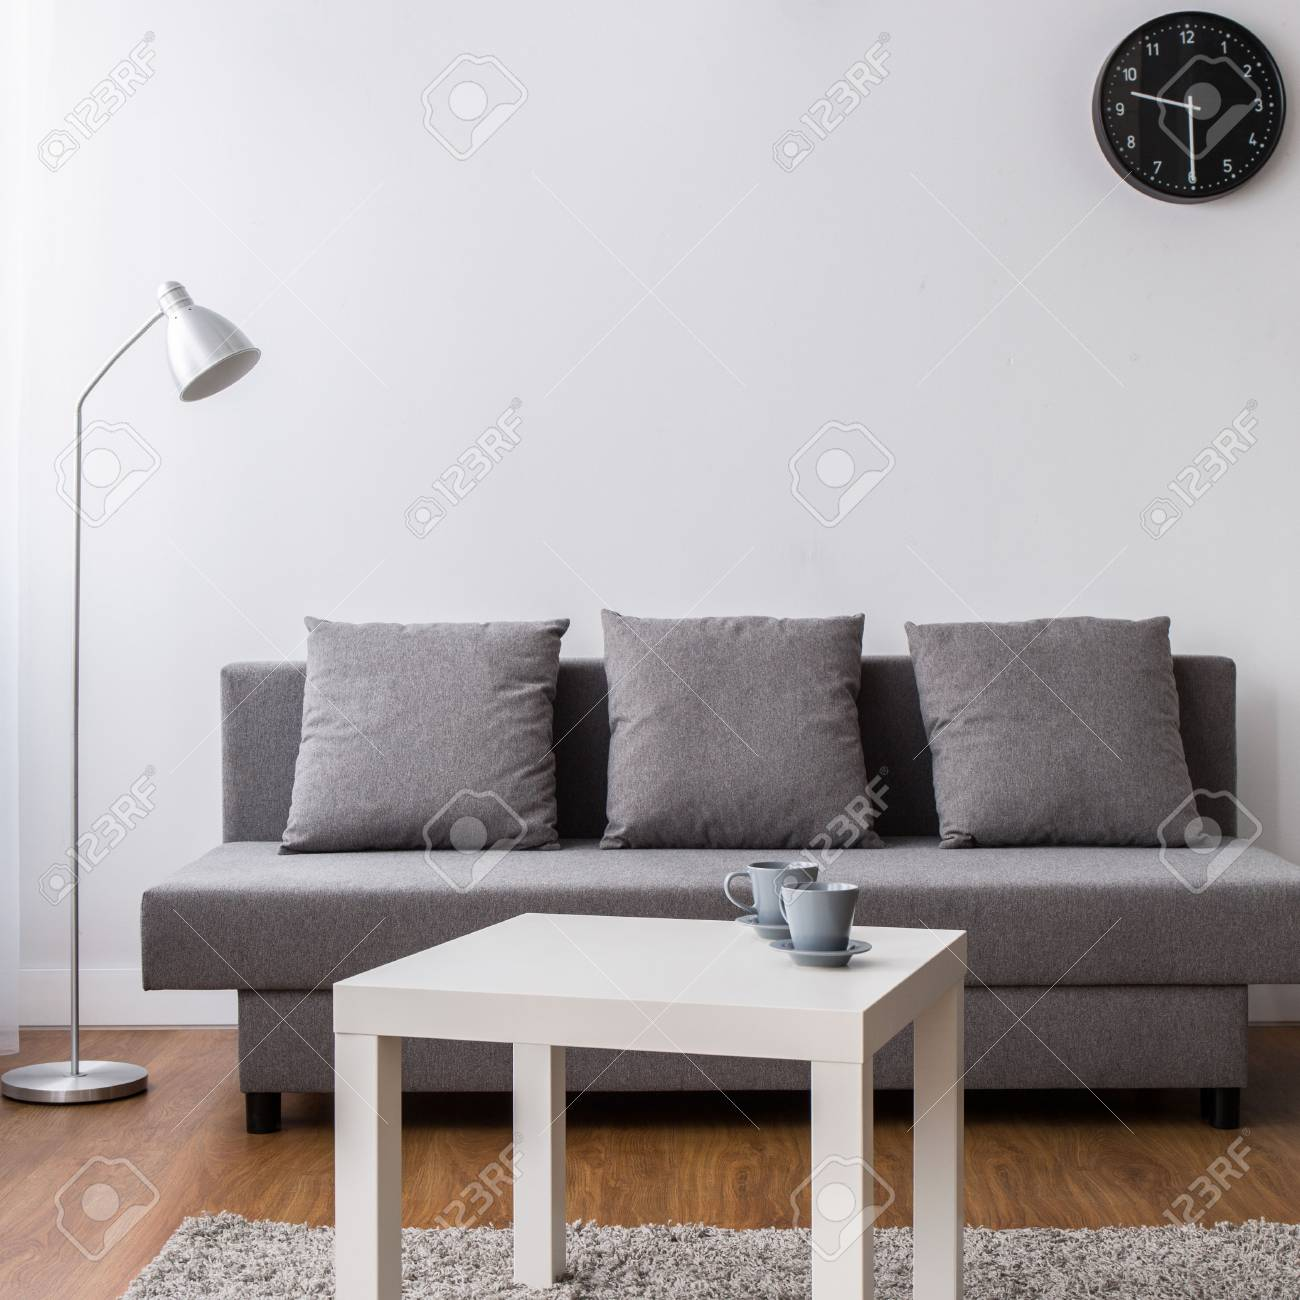 New Living Room With Comfortable Sofa, Small Table And Black.. Stock ...